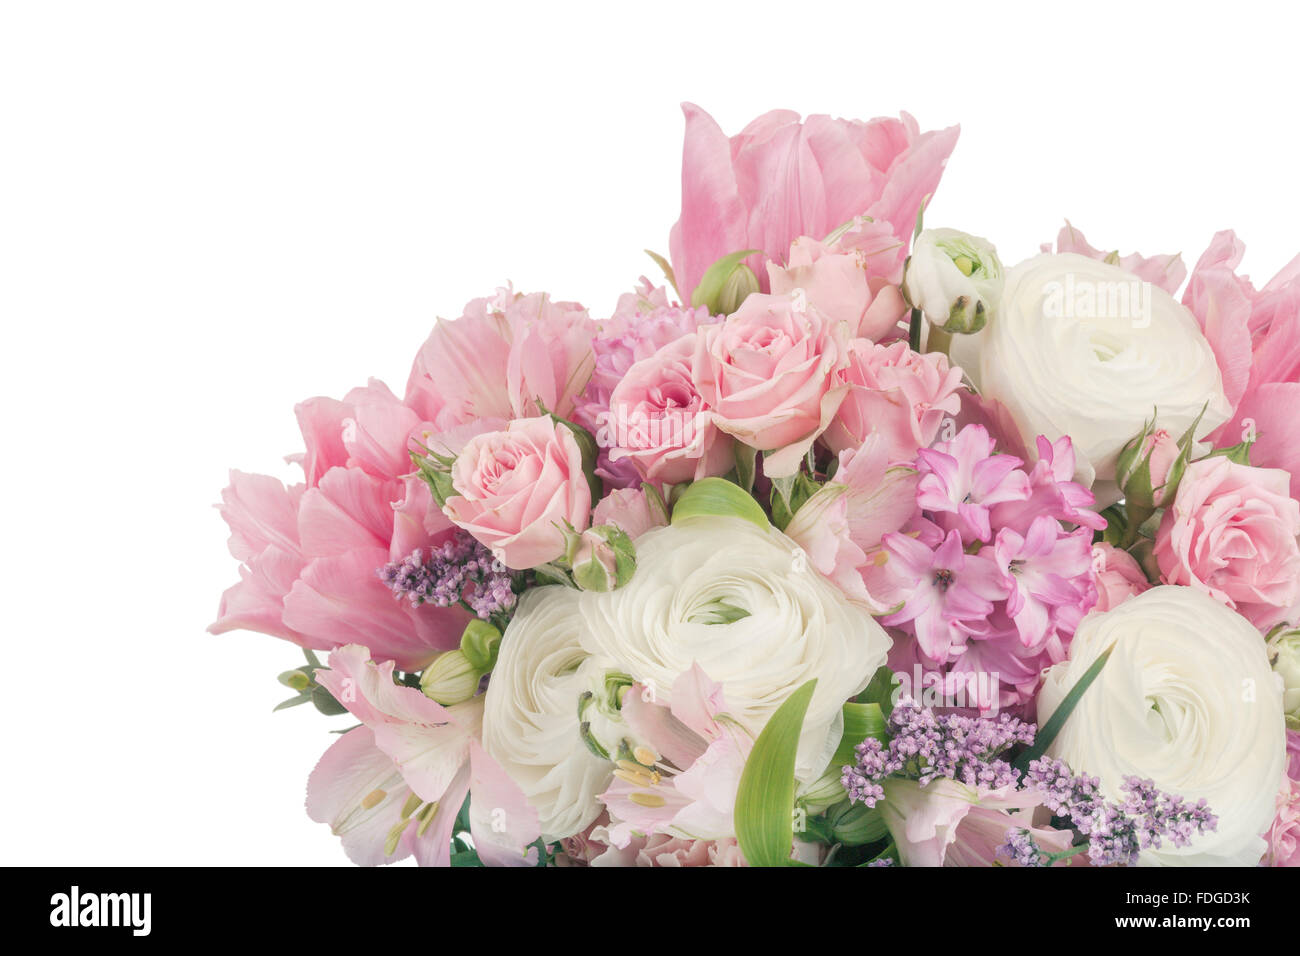 Amazing flower bouquet arrangement in pastel colors isolated on amazing flower bouquet arrangement in pastel colors isolated on white izmirmasajfo